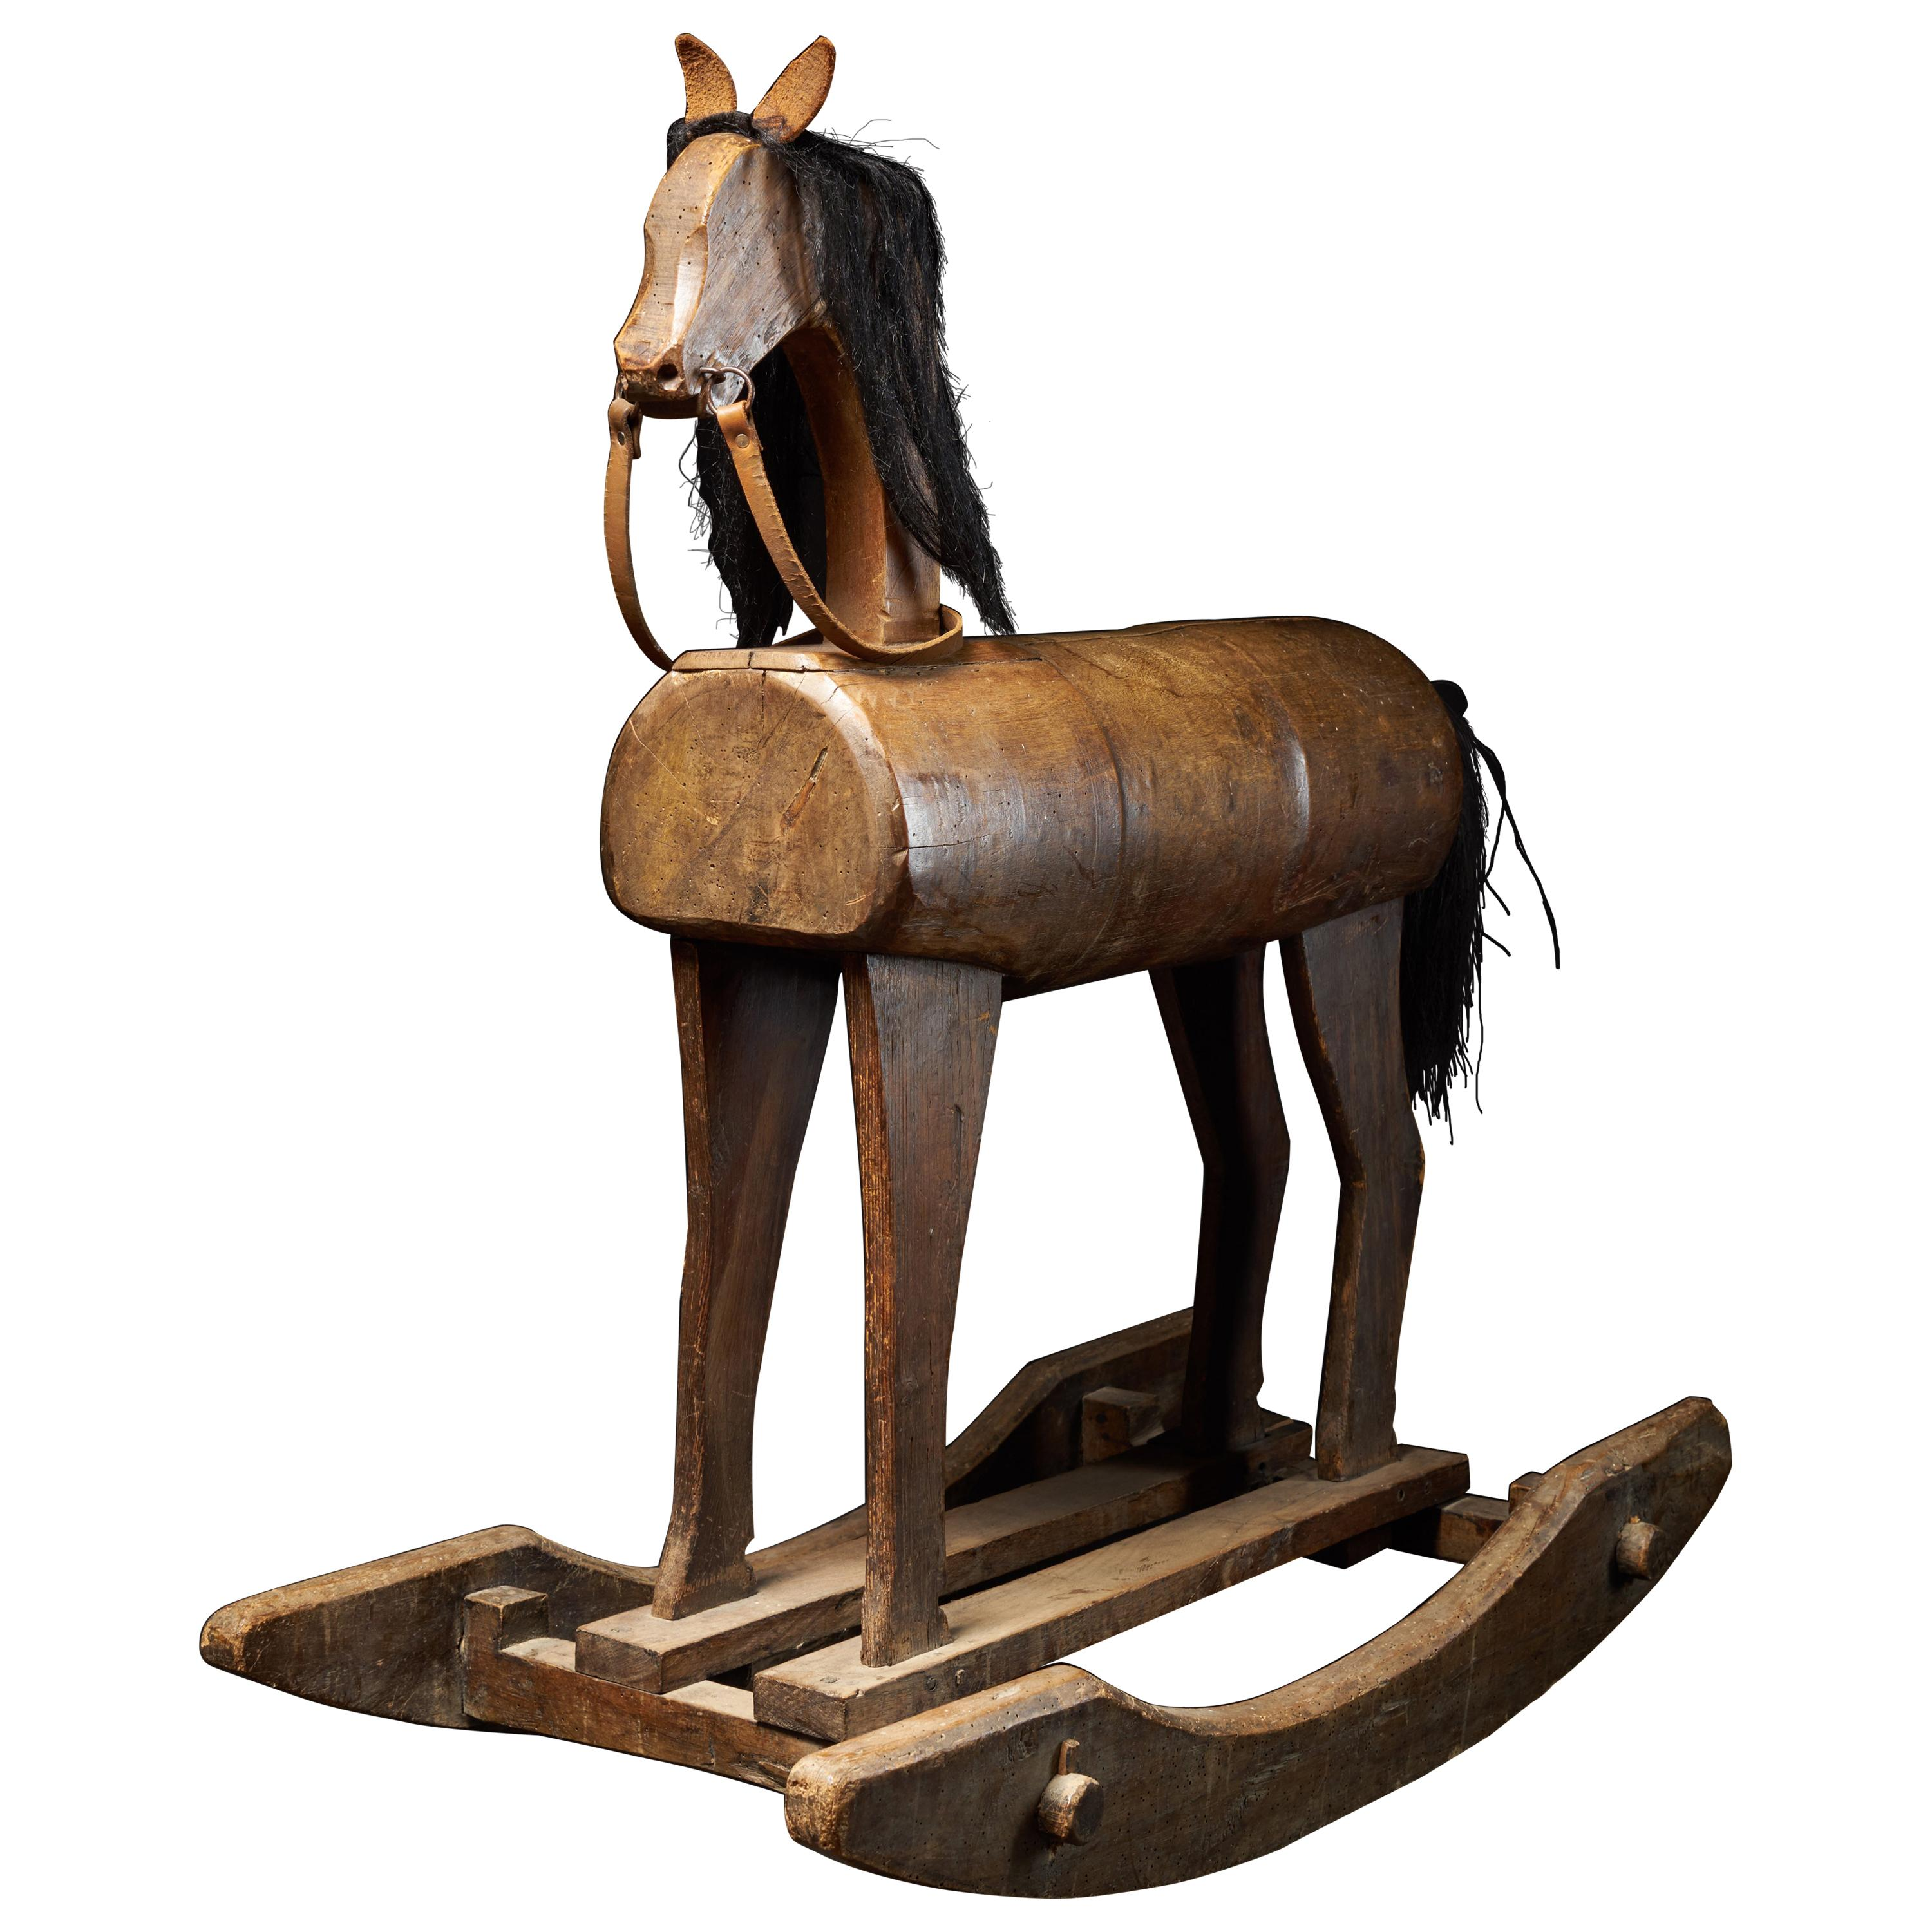 Early 20th Century, Antique Wooden Rocking Horse